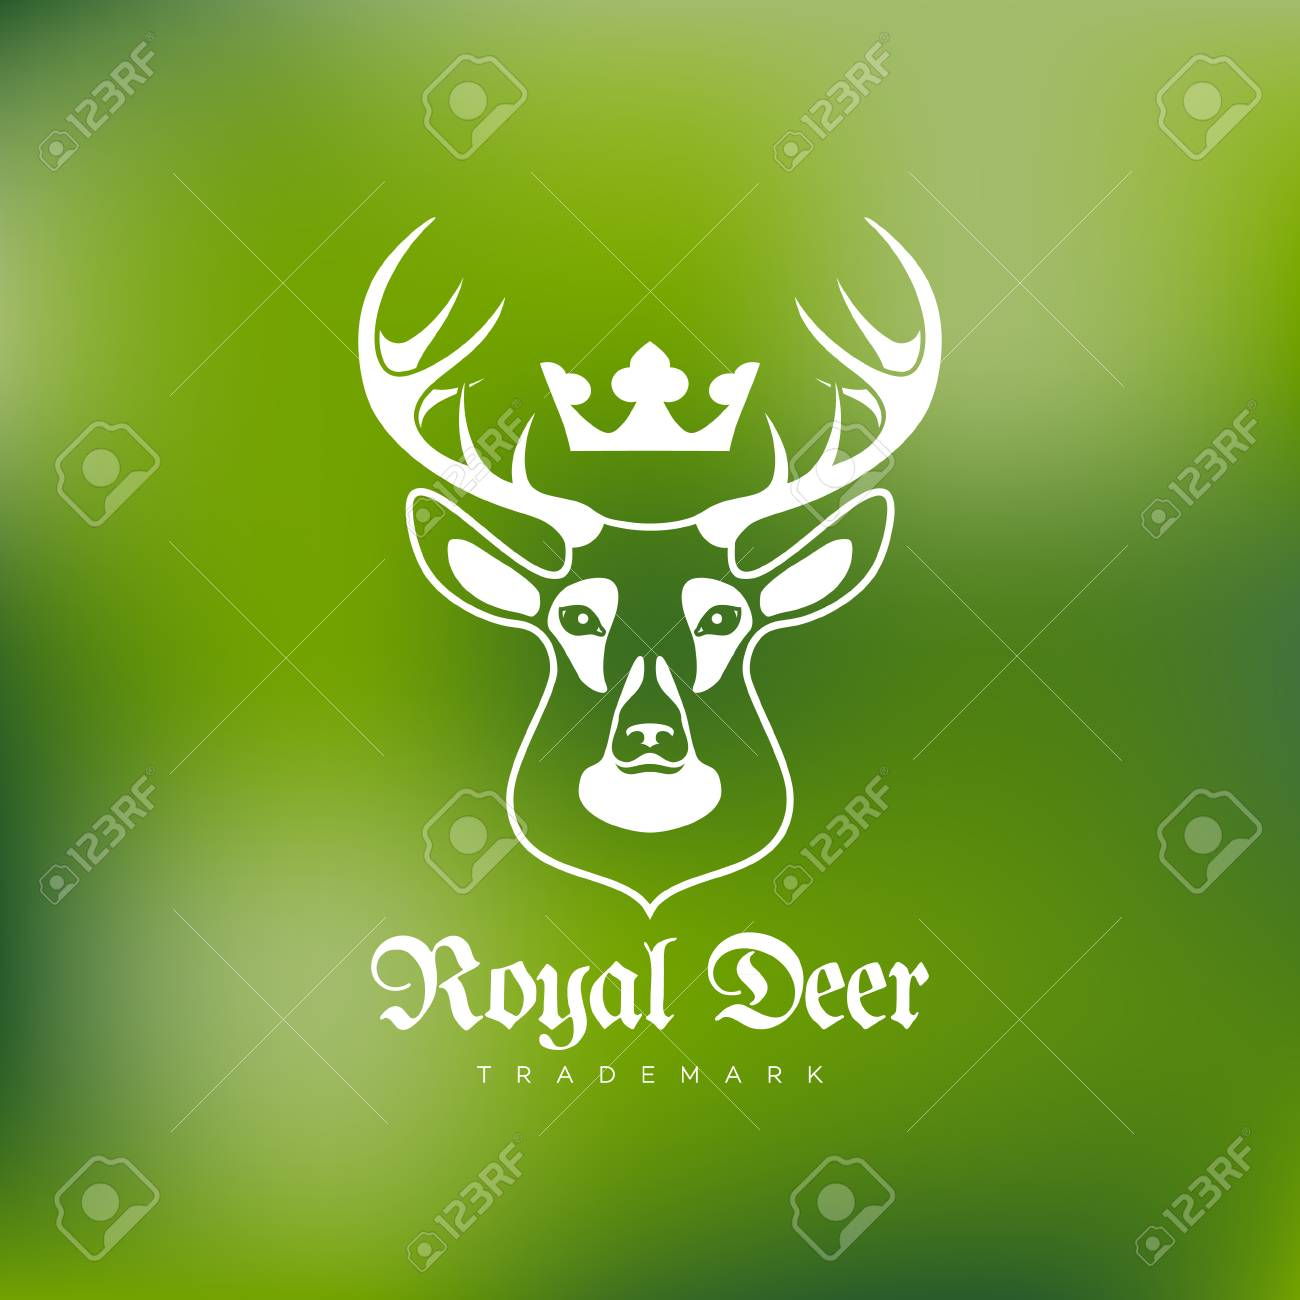 Template For Labels And Emblems With Deer Head Crown Vector Illustration Stock